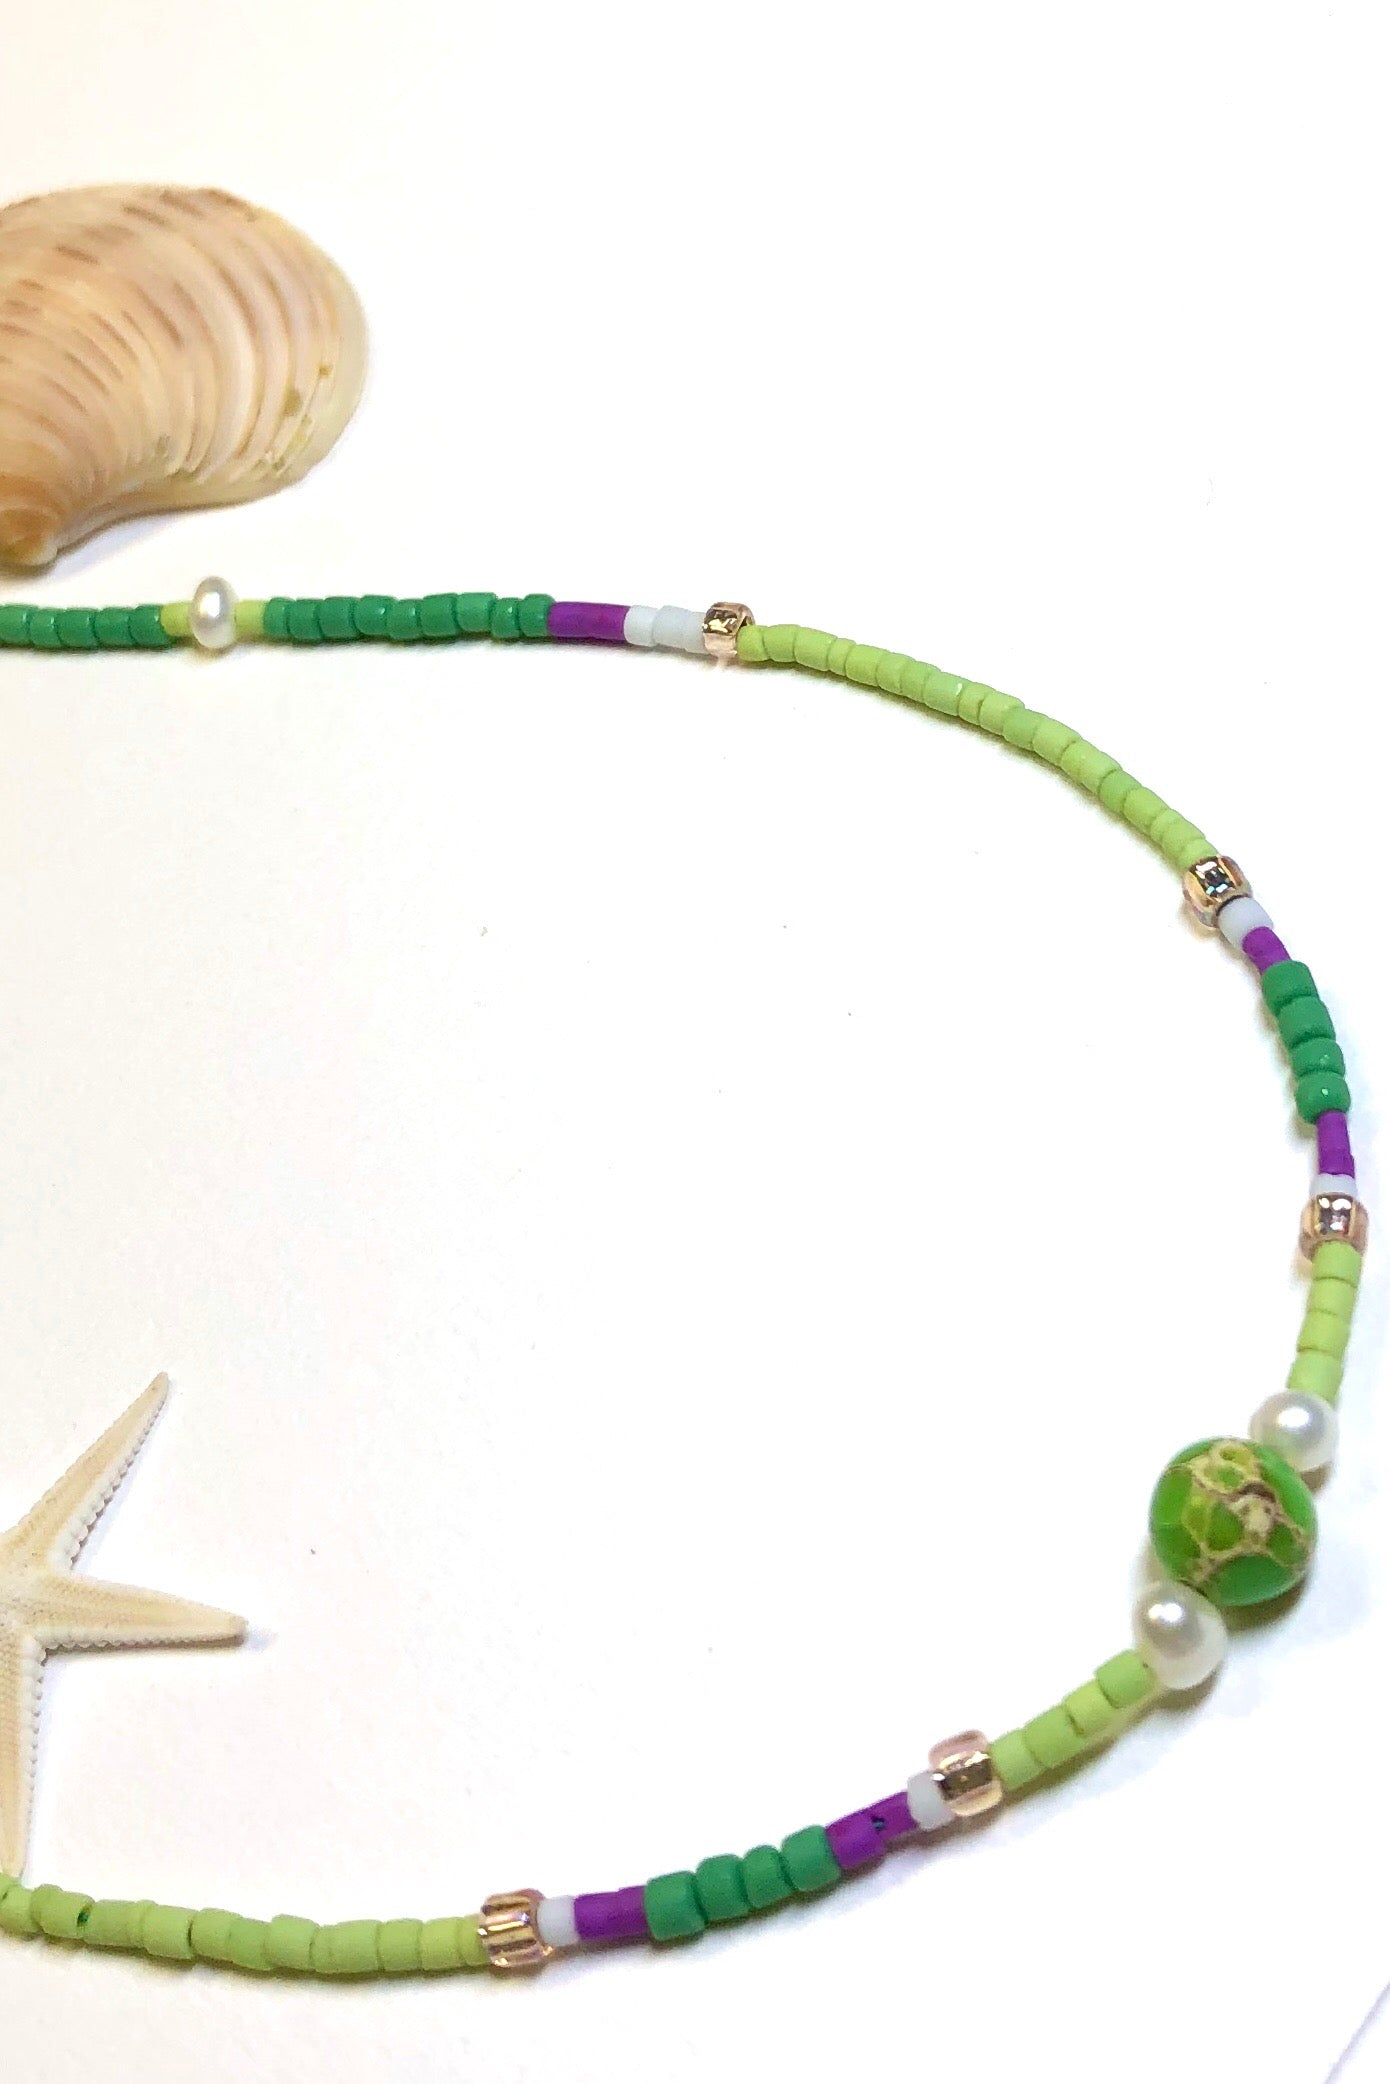 Necklace Cay Island Green is exclusive and handmade featuring 45cm in length and tiny Afghan seed beads, pearls, glass and natural stone.